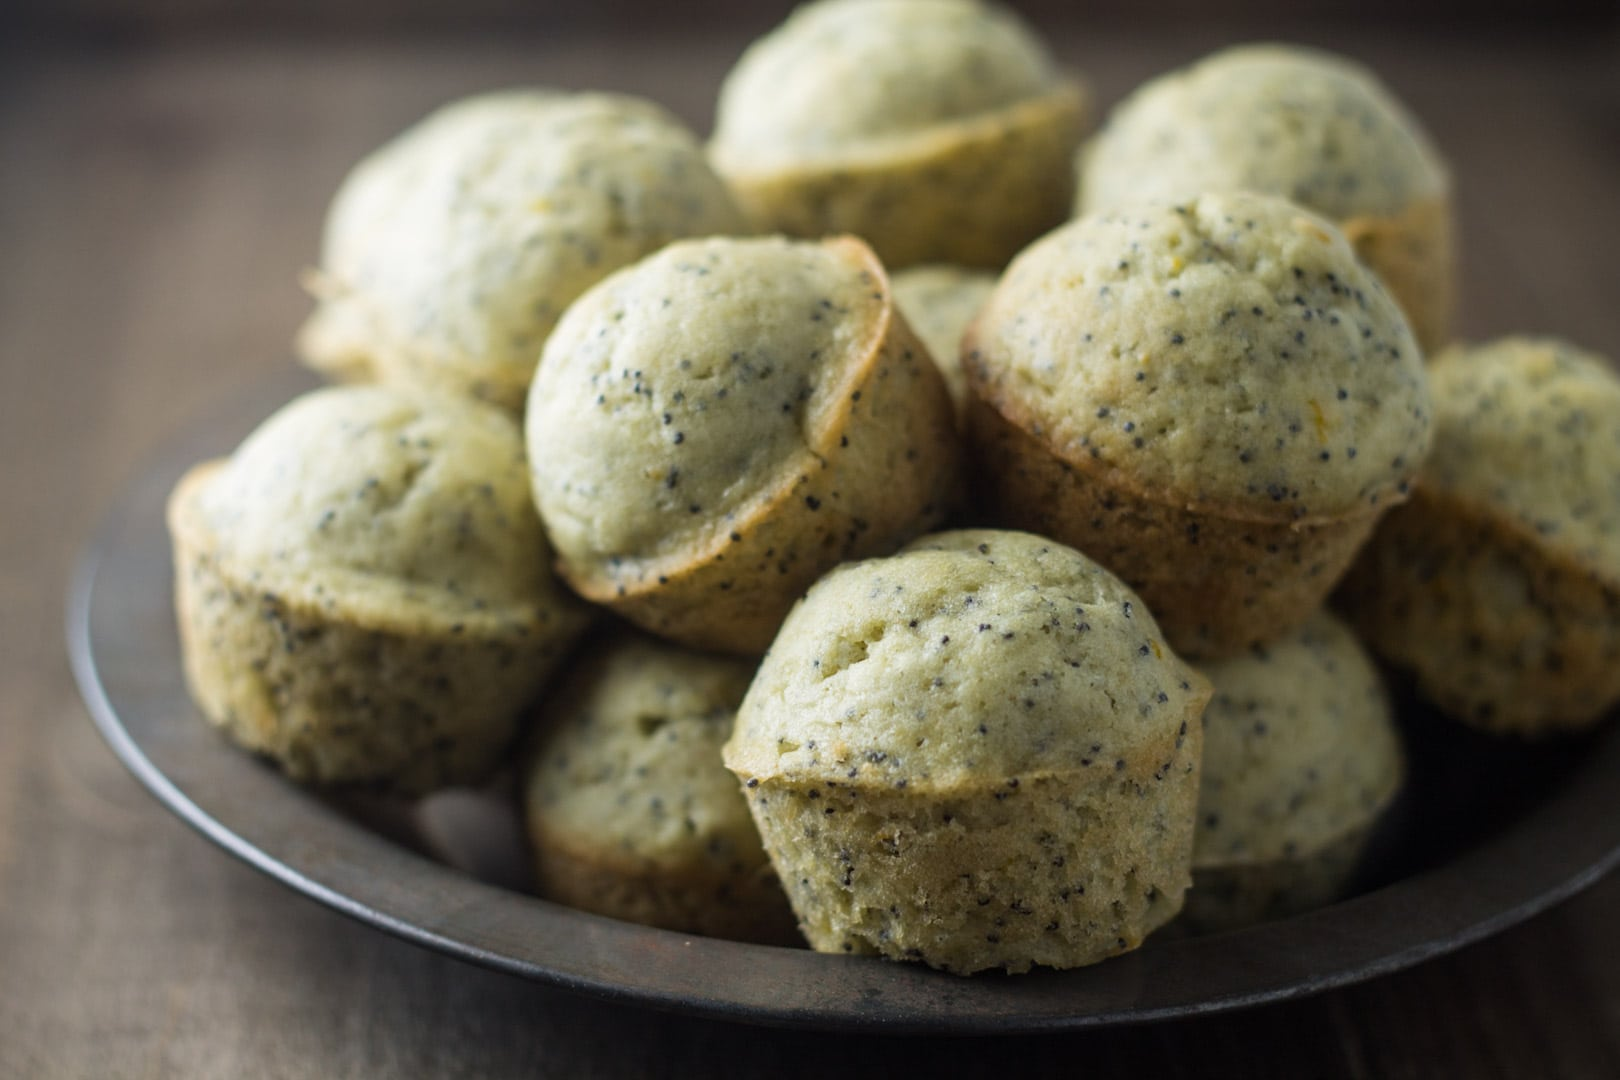 These Low Fodmap Lemon Poppy Seed Muffins just scream spring-time! Filled with fresh lemon flavor, these gluten free and dairy free muffins are de-lish for breakfast or brunch!